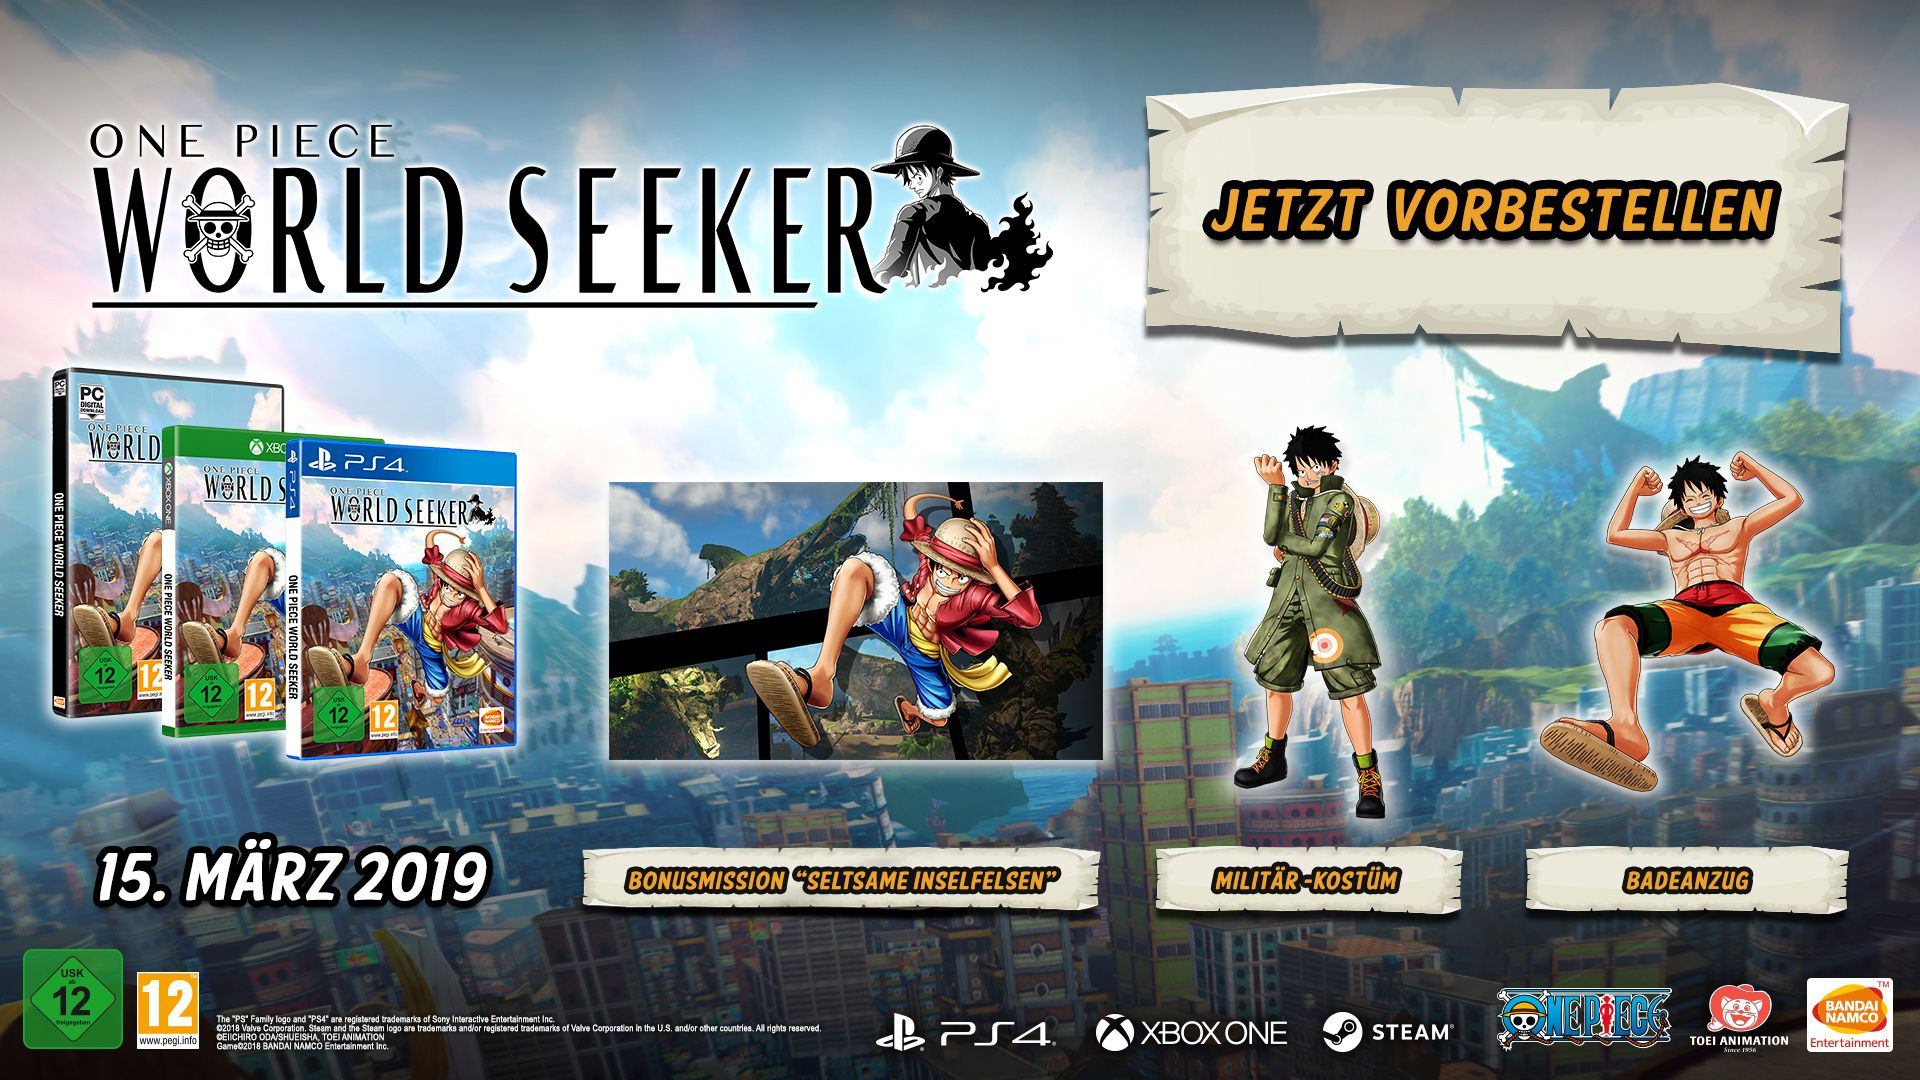 One Piece World Seeker - Preorder Offer